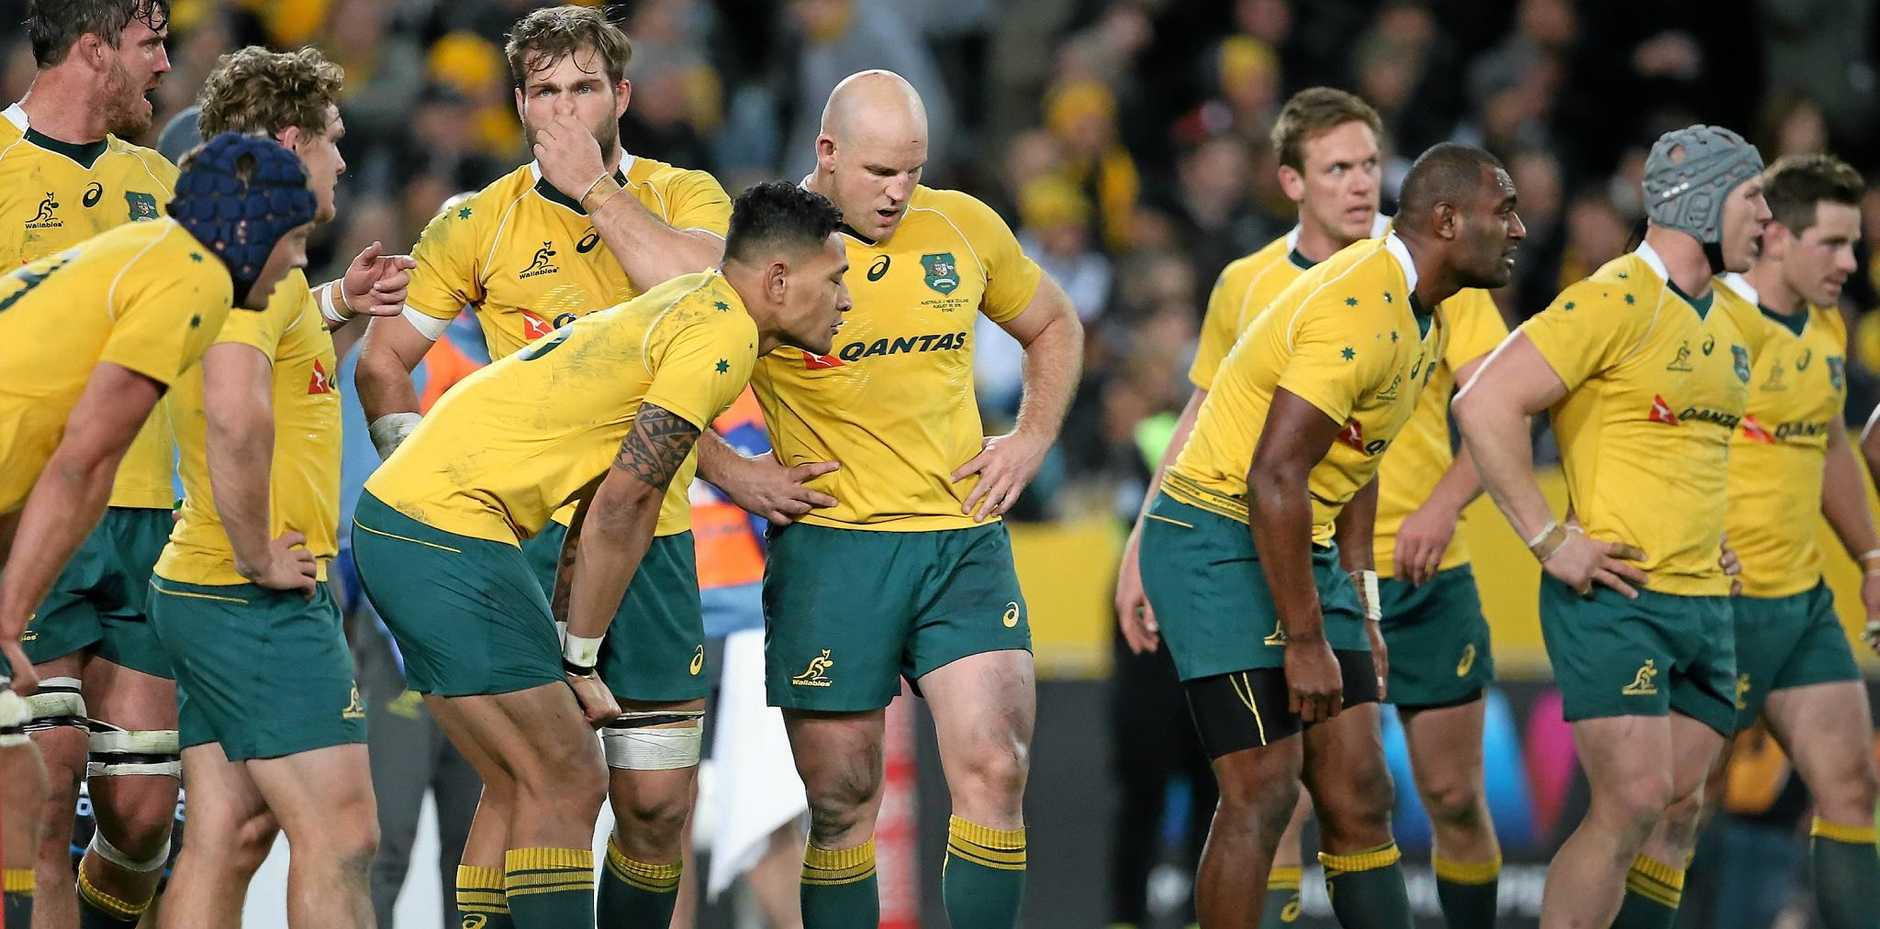 CRUSHED: Australian captain Stephen Moore stands with his teammates after their defeat in Sydney on Saturday.